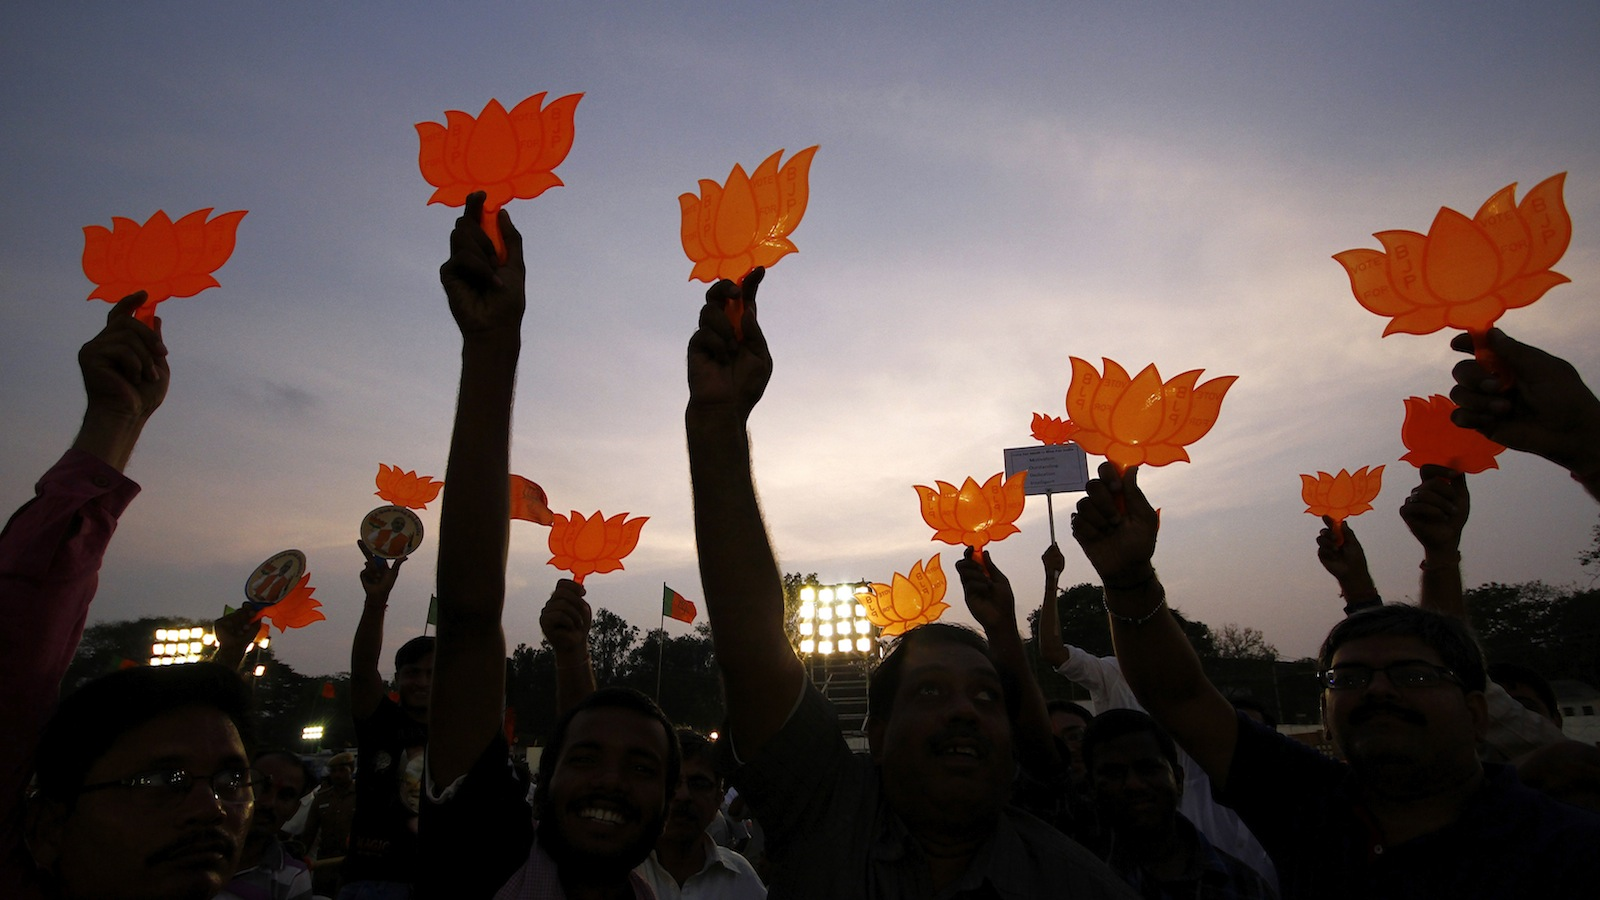 Supporters of Hindu nationalist Narendra Modi, prime ministerial candidate for India's main opposition Bharatiya Janata Party (BJP), hold the party's symbol during an election campaign rally addressed by Modi in the southern Indian city of Chennai April 13, 2014. Modi on Saturday sought to blunt criticism that he is hostile to Muslims, the country's biggest minority group. REUTERS/Babu